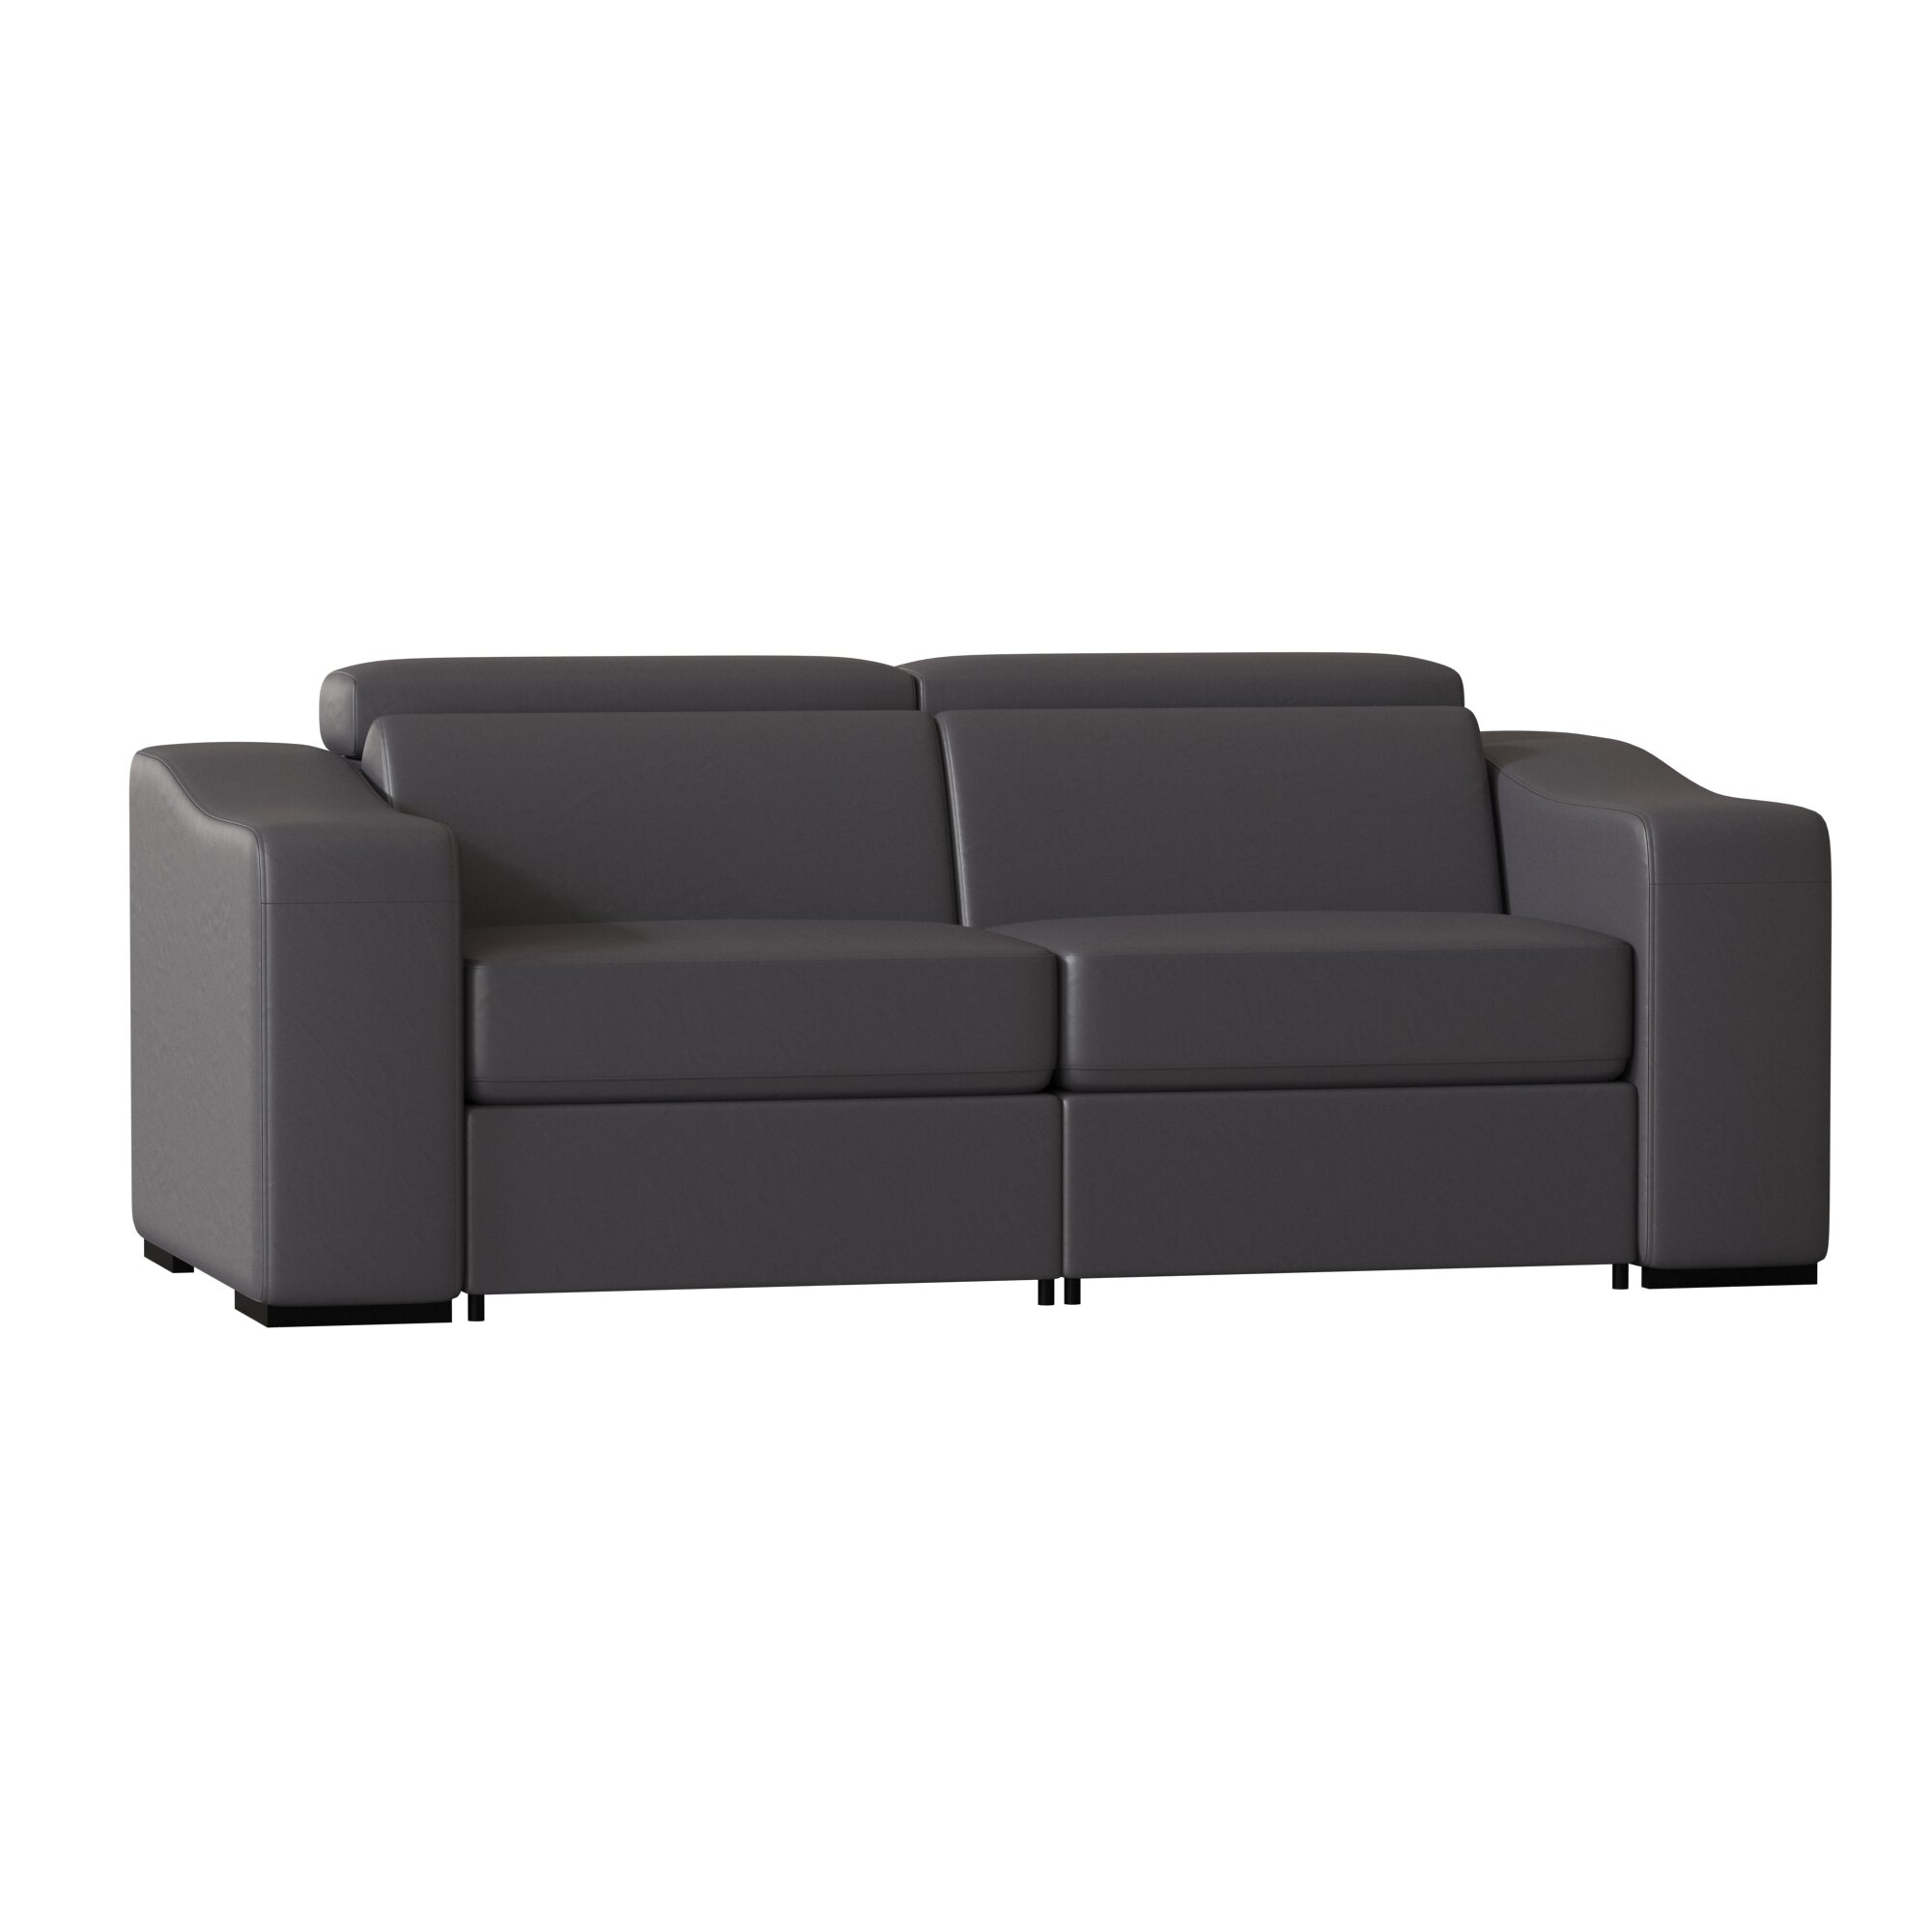 Fabulous Cortez Ii Power Reclining Sofa Squirreltailoven Fun Painted Chair Ideas Images Squirreltailovenorg